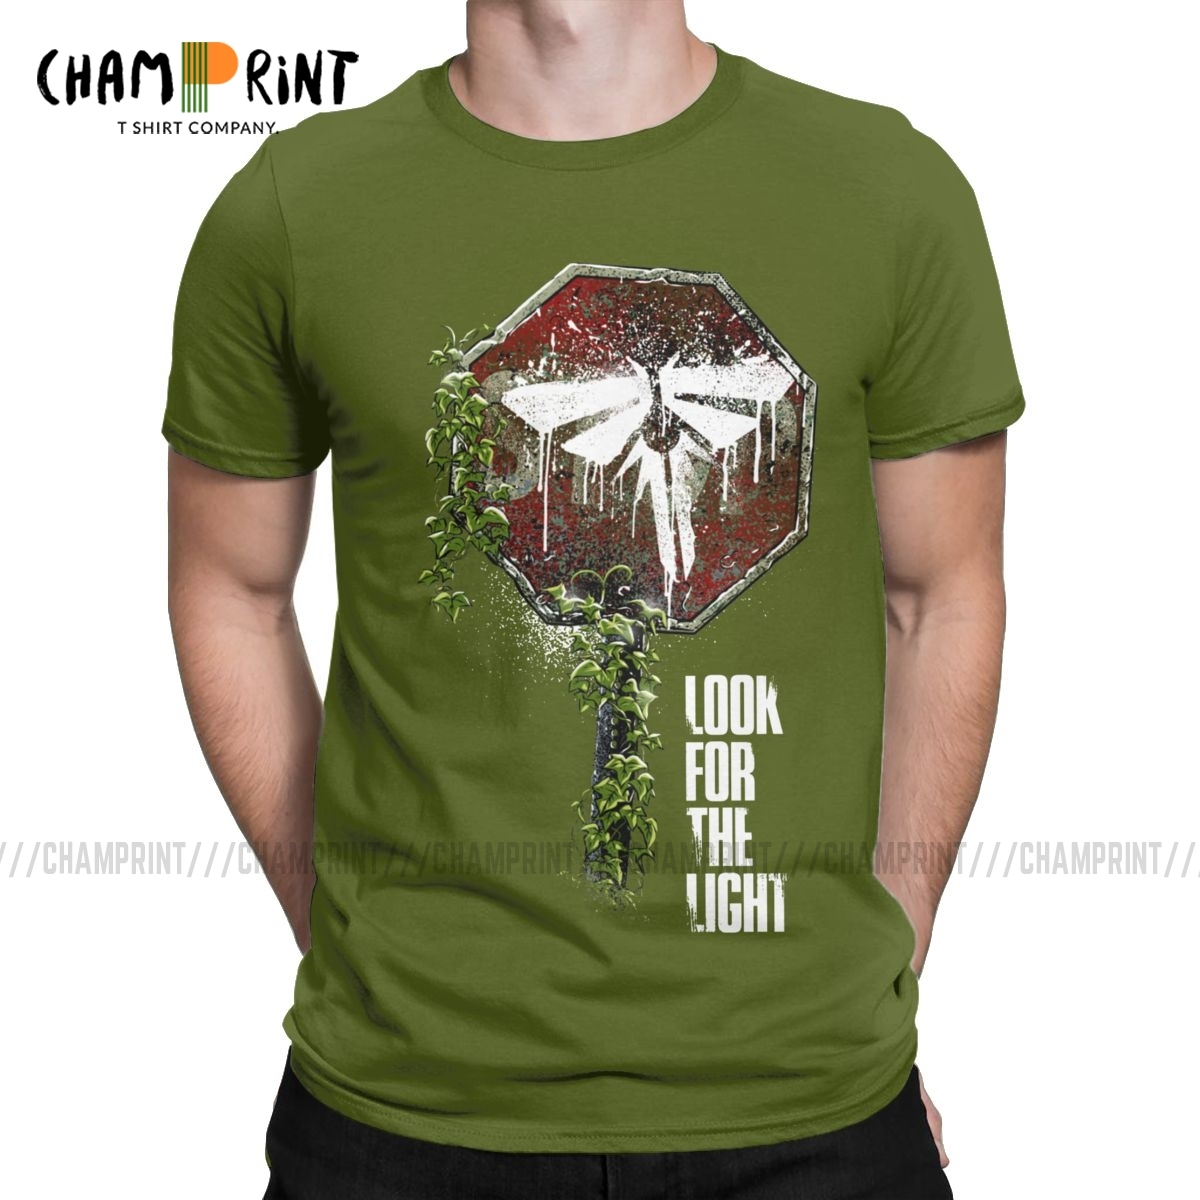 Look For The Light T Shirts For Men Pure Cotton Awesome T-Shirts Round Collar The Last Of Us Game Tees Short Sleeve Tops Unique